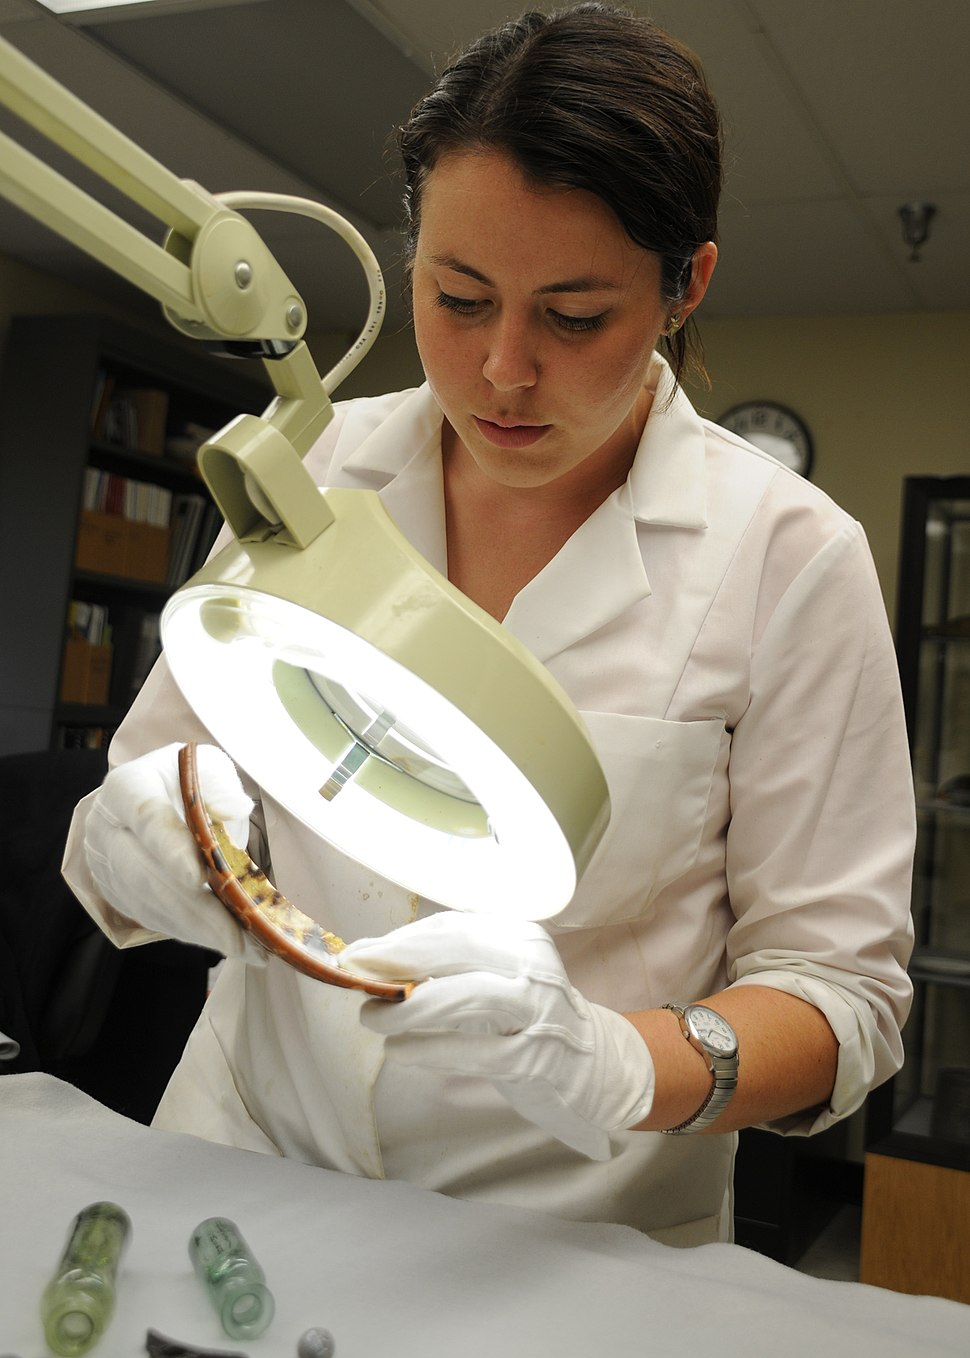 US Navy 100803-N-9671T-004 Kate Morrand, an artifact conservator at Naval History and Heritage Command, inspects a piece of pottery recovered from the wreck of the sloop-of-war USS Scorpion